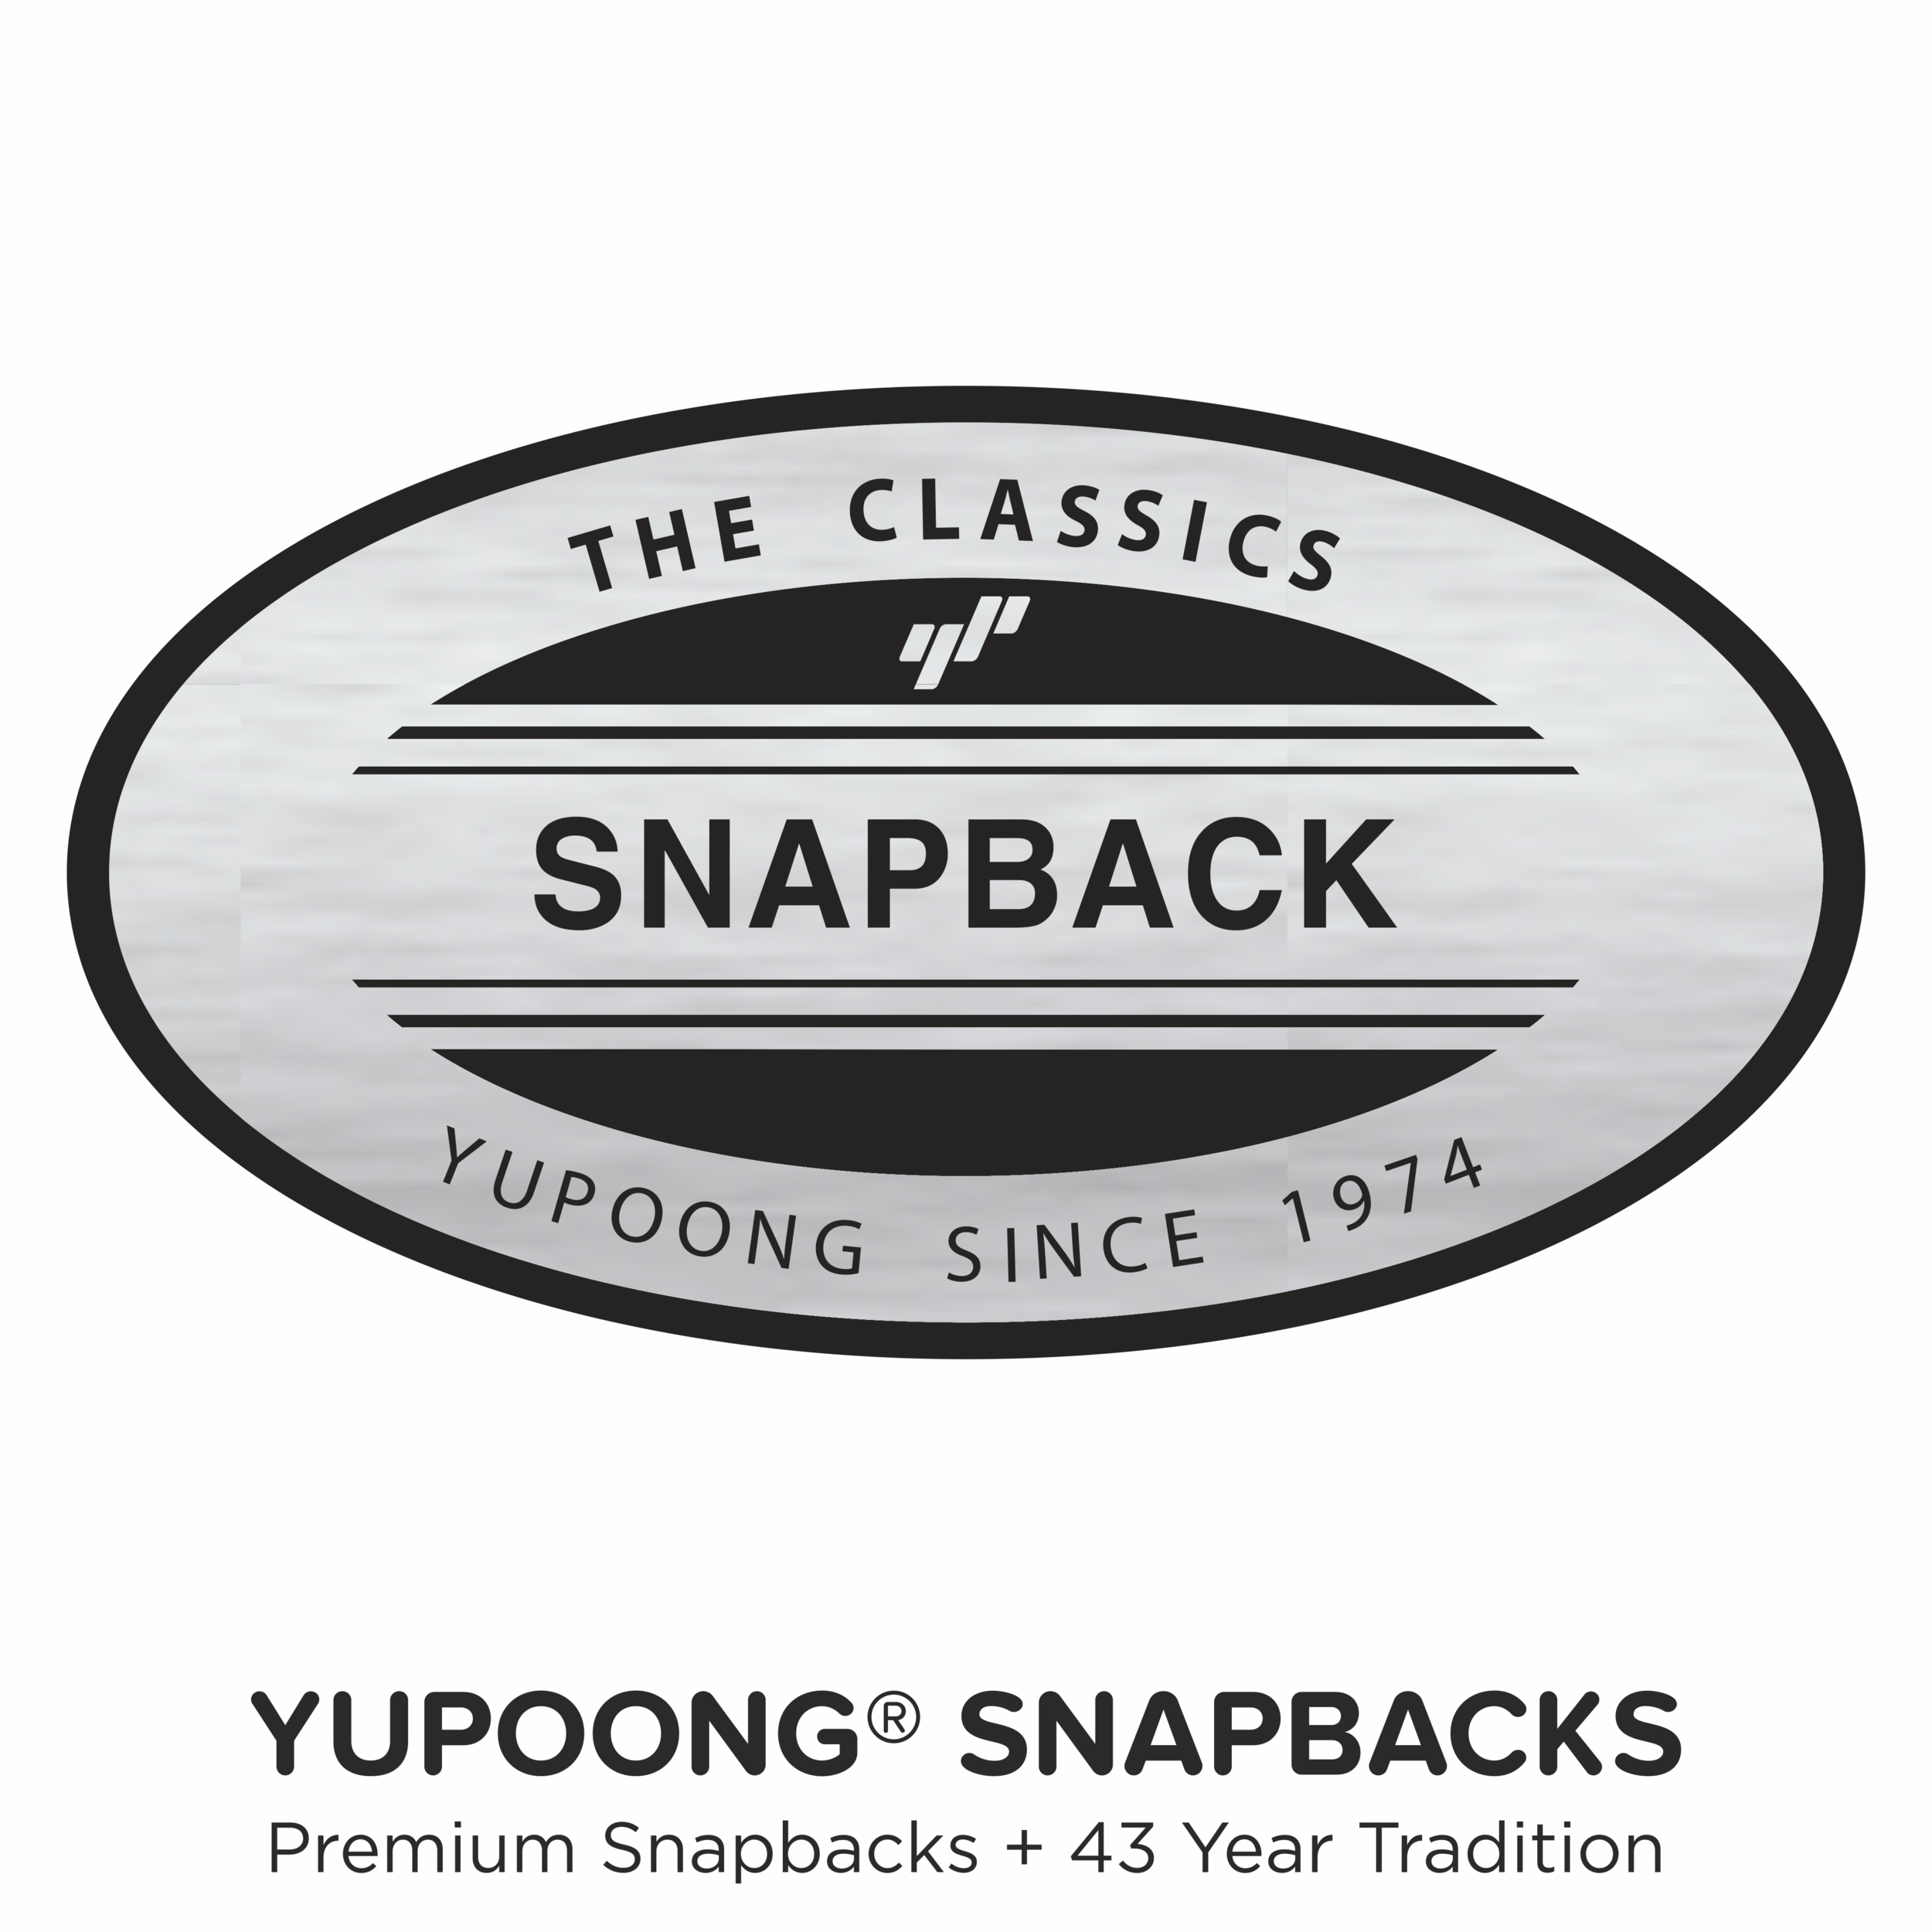 Classic Snapbacks   The unparalleled quality and best selling of all time,the Classic Snapback. The classics come in a range of different styles and shapes and are made with the high quality standards as you would expect from Yupoong.  The Classic Snapbacks are offered in a number of styles including our world renowned Classics 6 panel snapback to our 5 and are typically constructed to resemble the best SNAPBACK caps in the headwear industry.